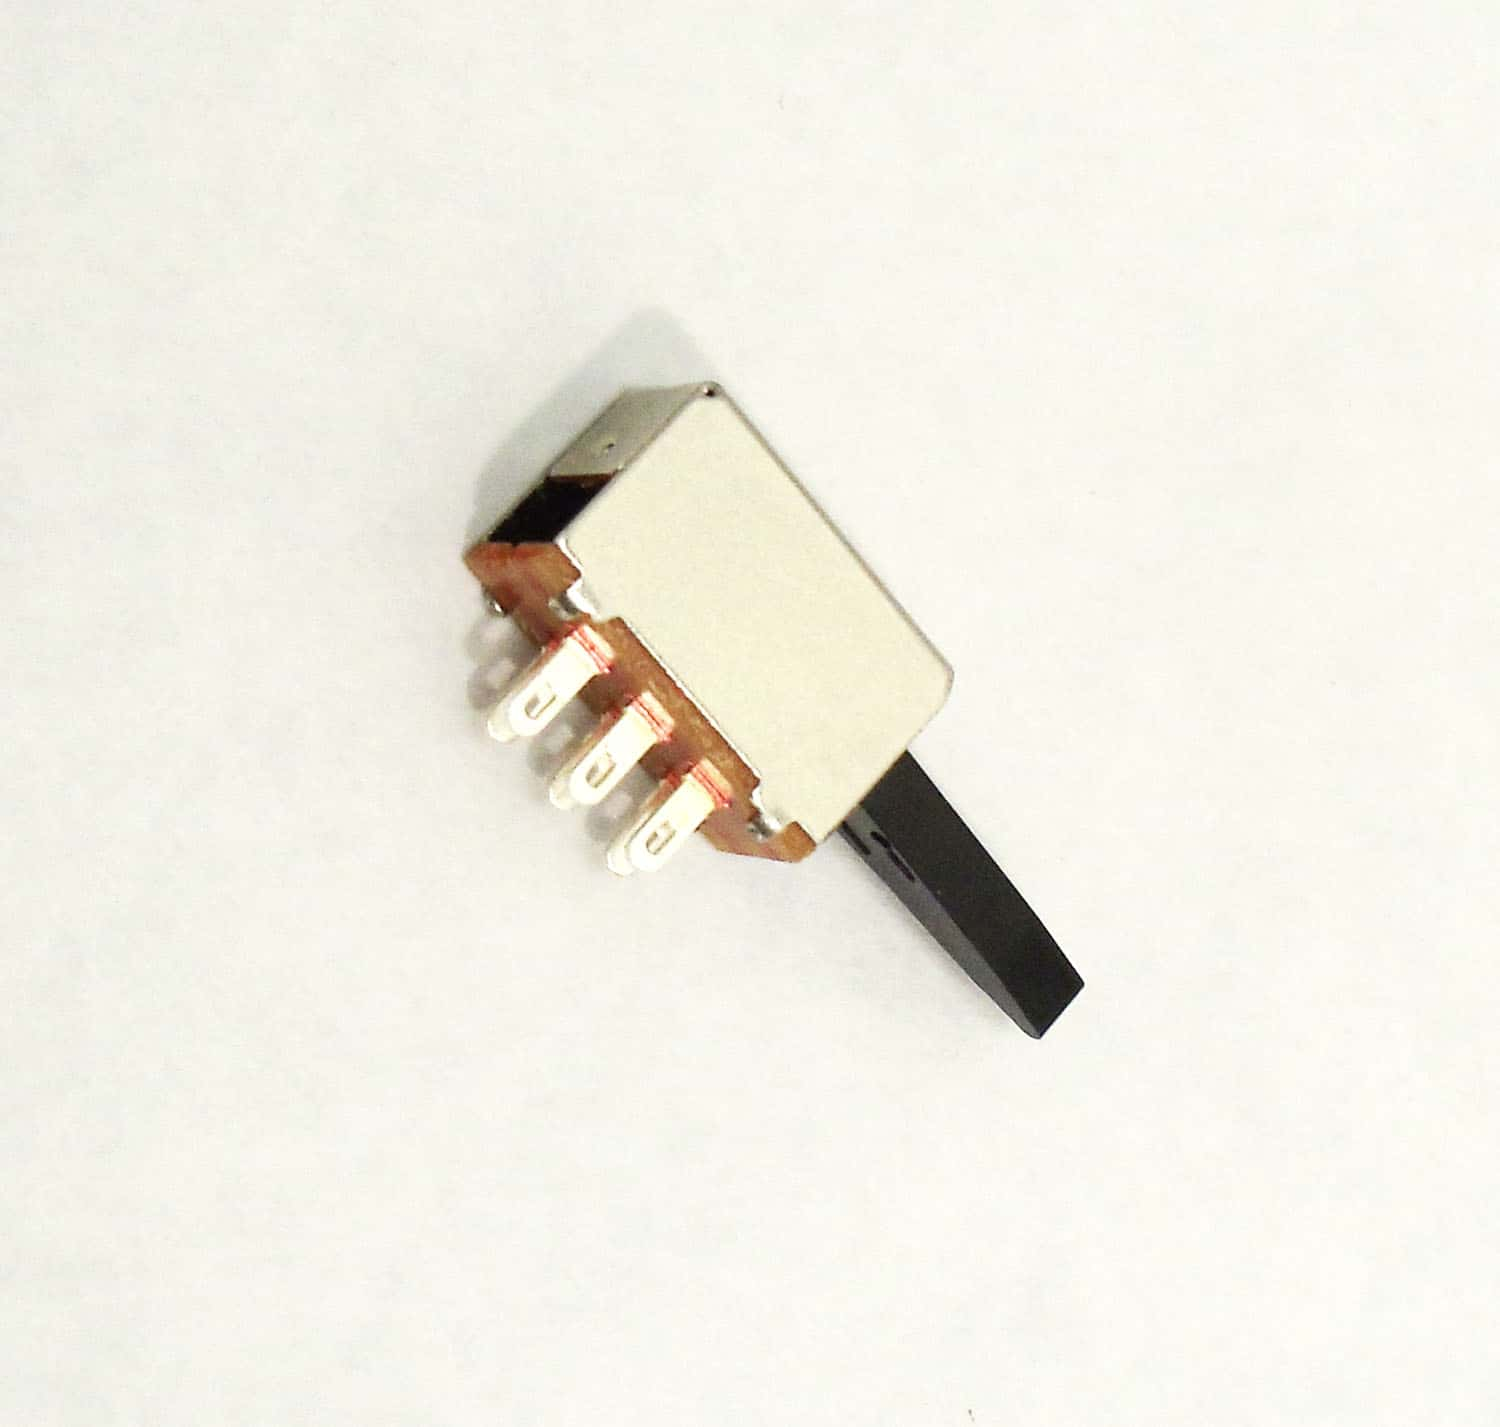 DMS - Twinpoint Replacement Switch For SS56, DM1000, DM452, DM452-5 Microphones